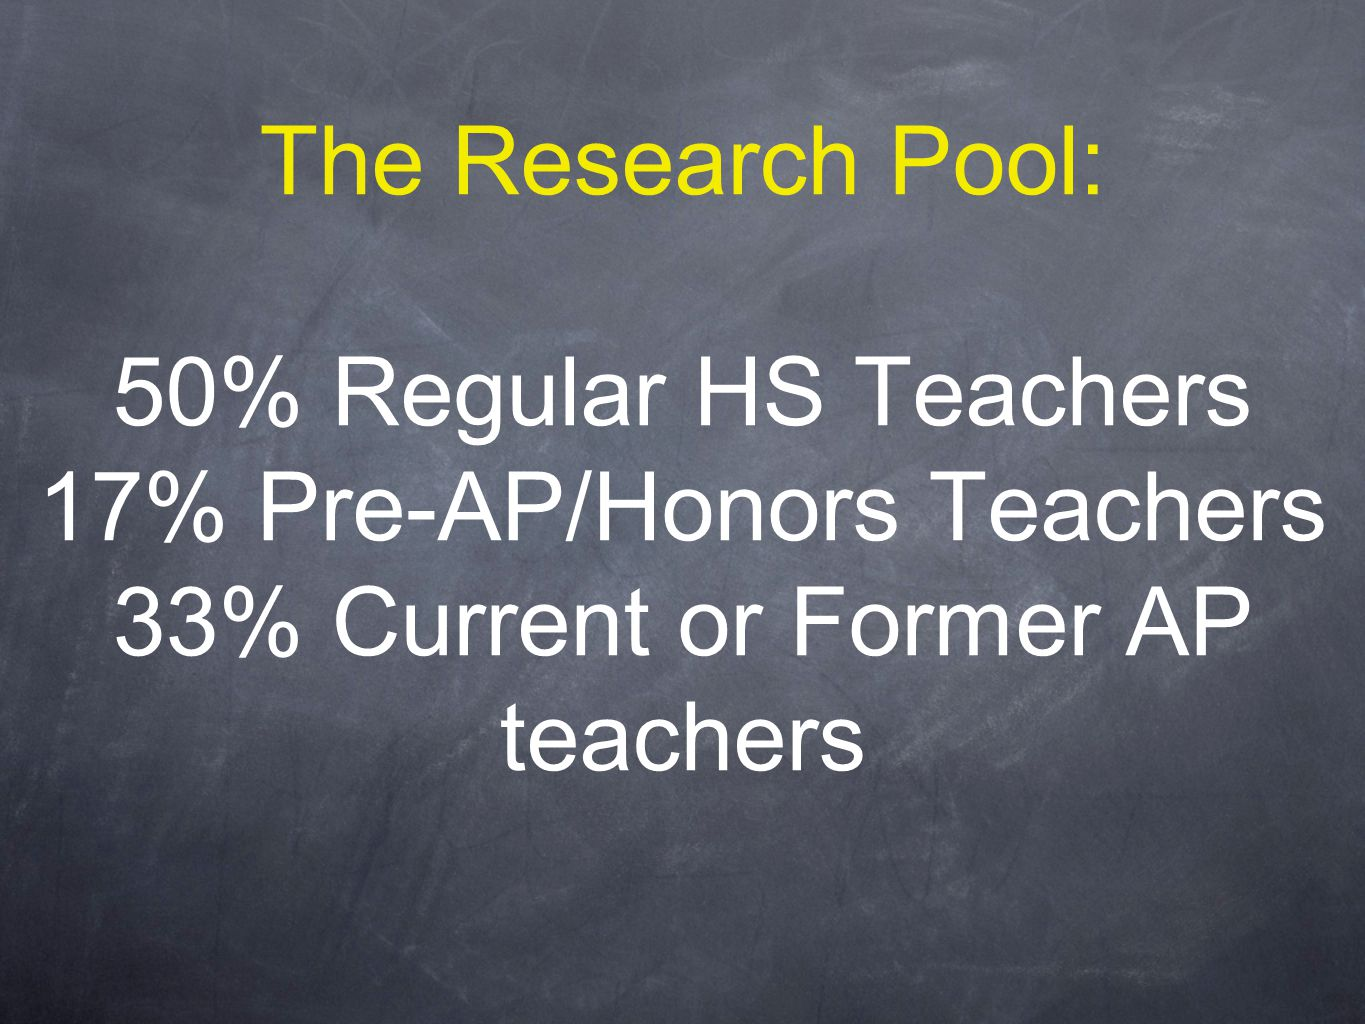 The Research Pool: 50% Regular HS Teachers 17% Pre-AP/Honors Teachers 33% Current or Former AP teachers